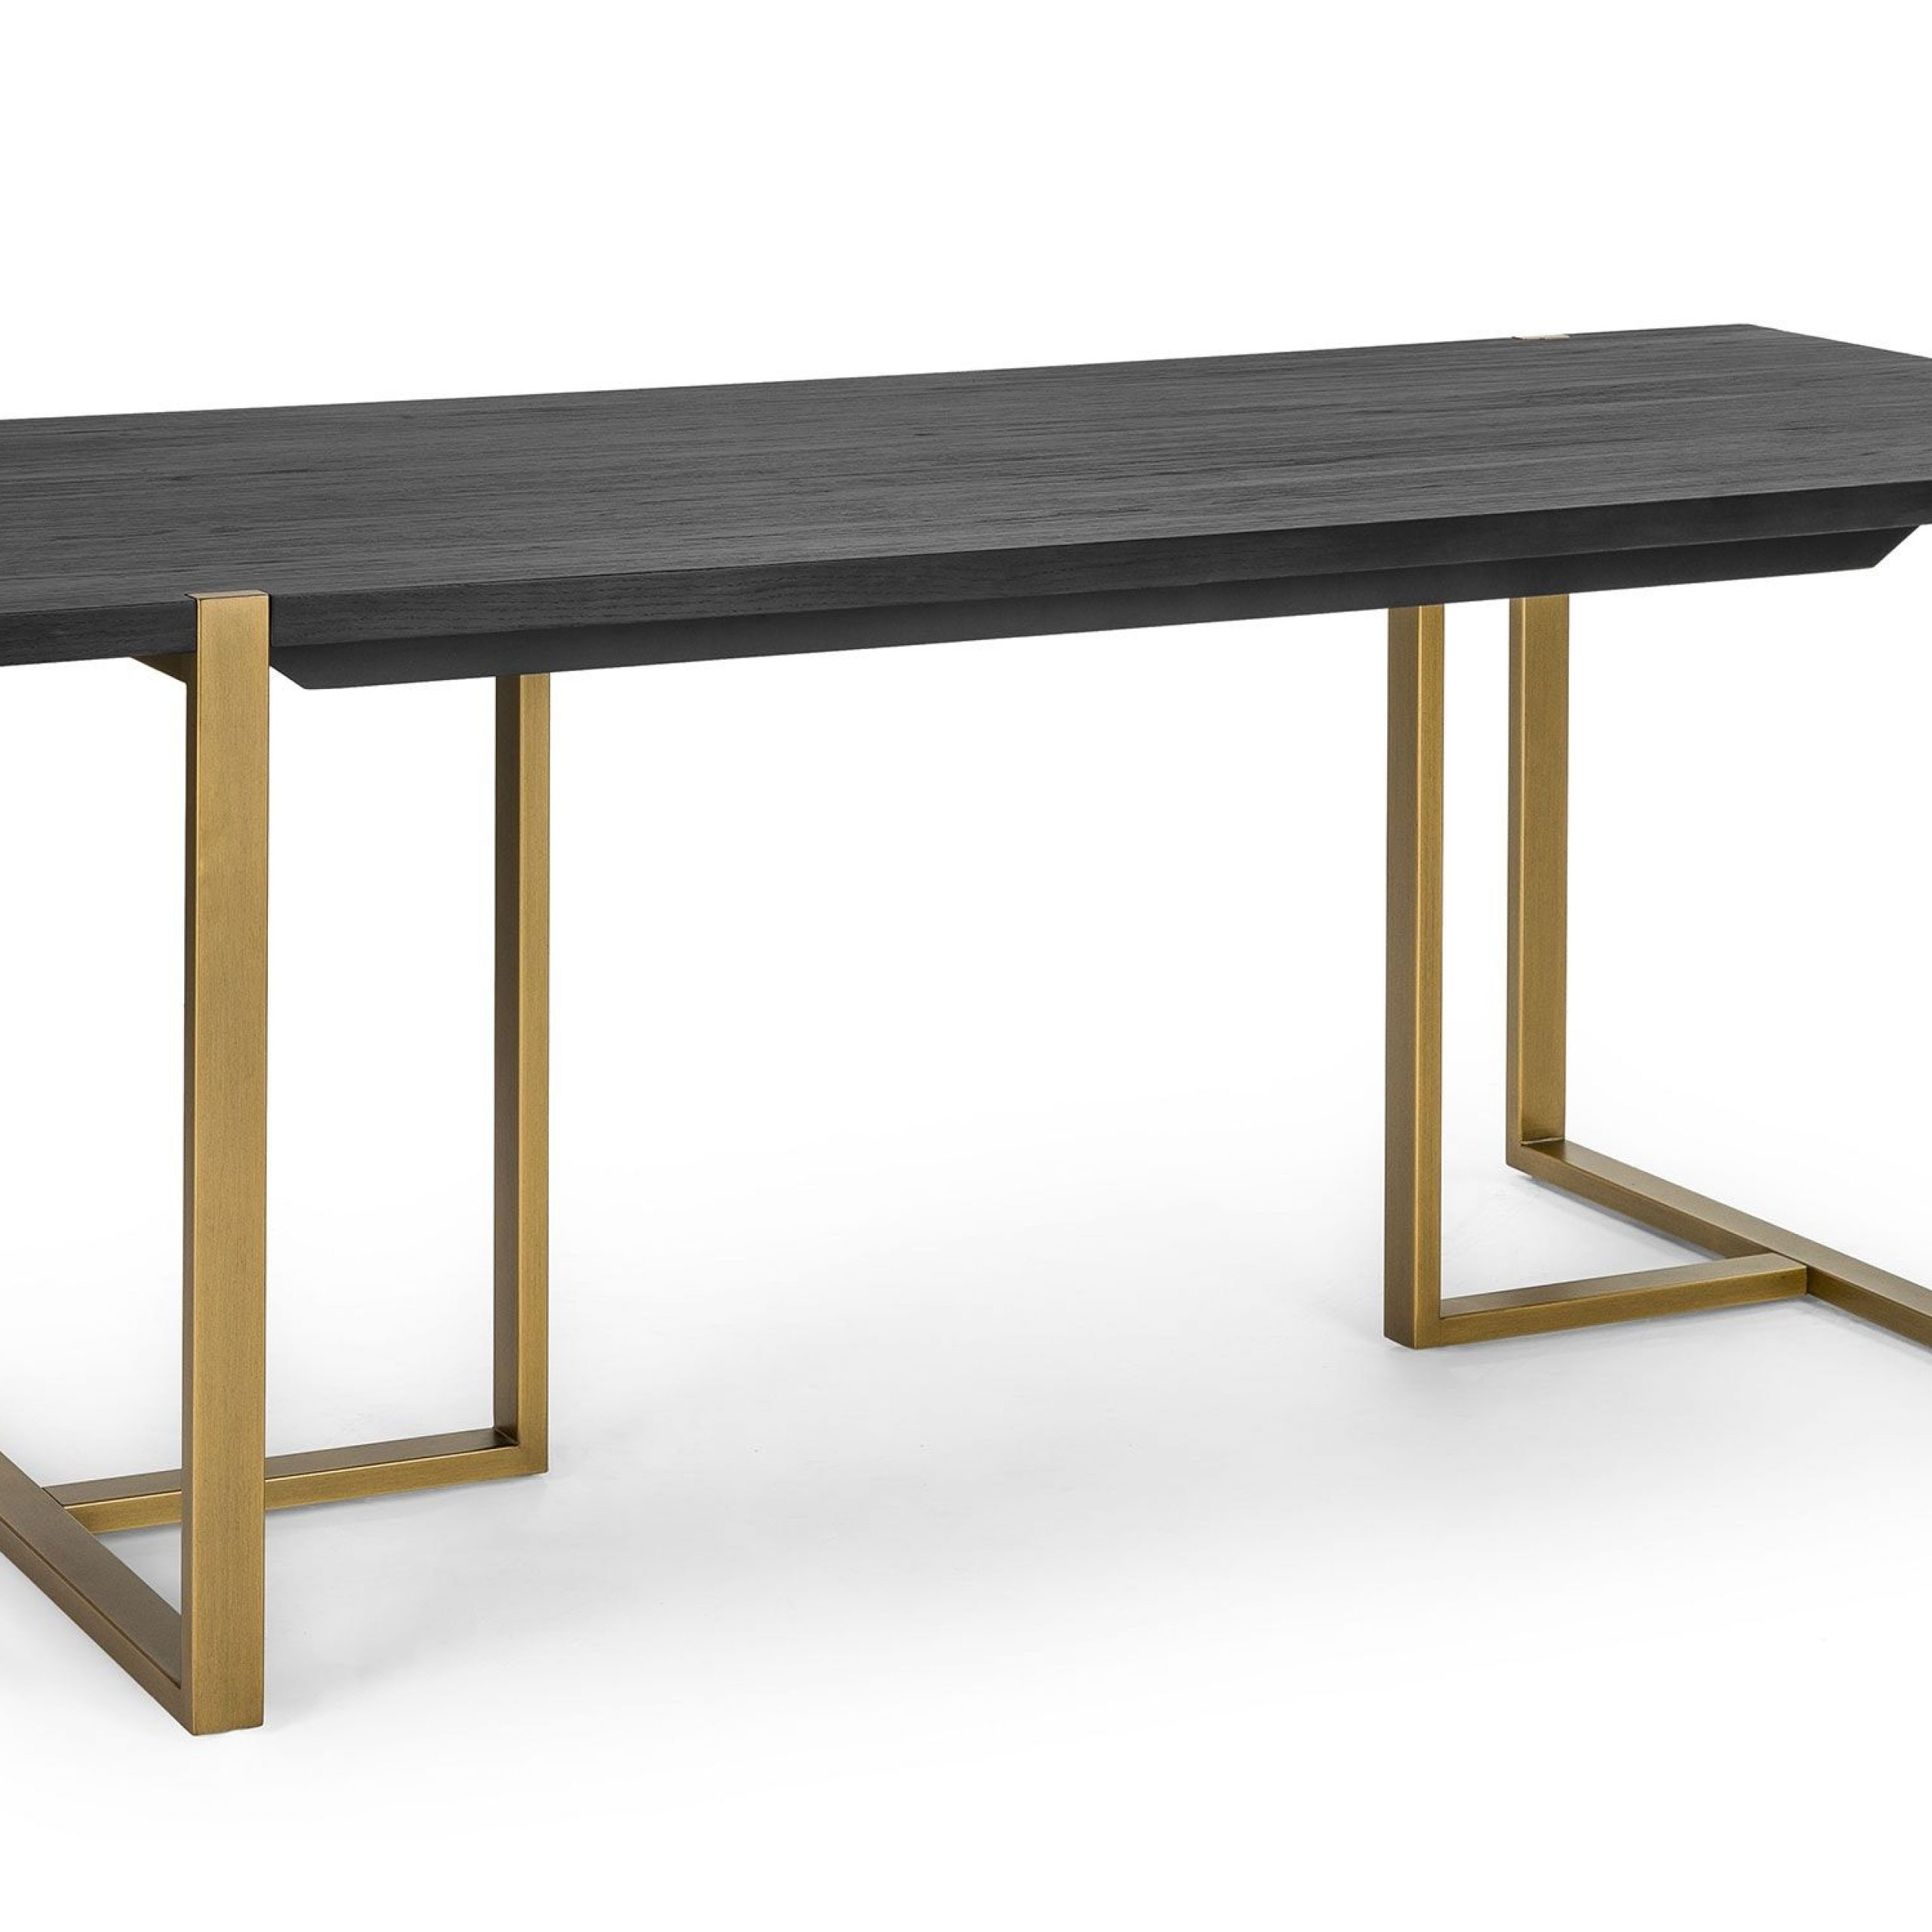 "2018 Dining Tables In Seared Oak With Brass Detail For Oscuro Black 78"" Dining Table (View 13 of 30)"